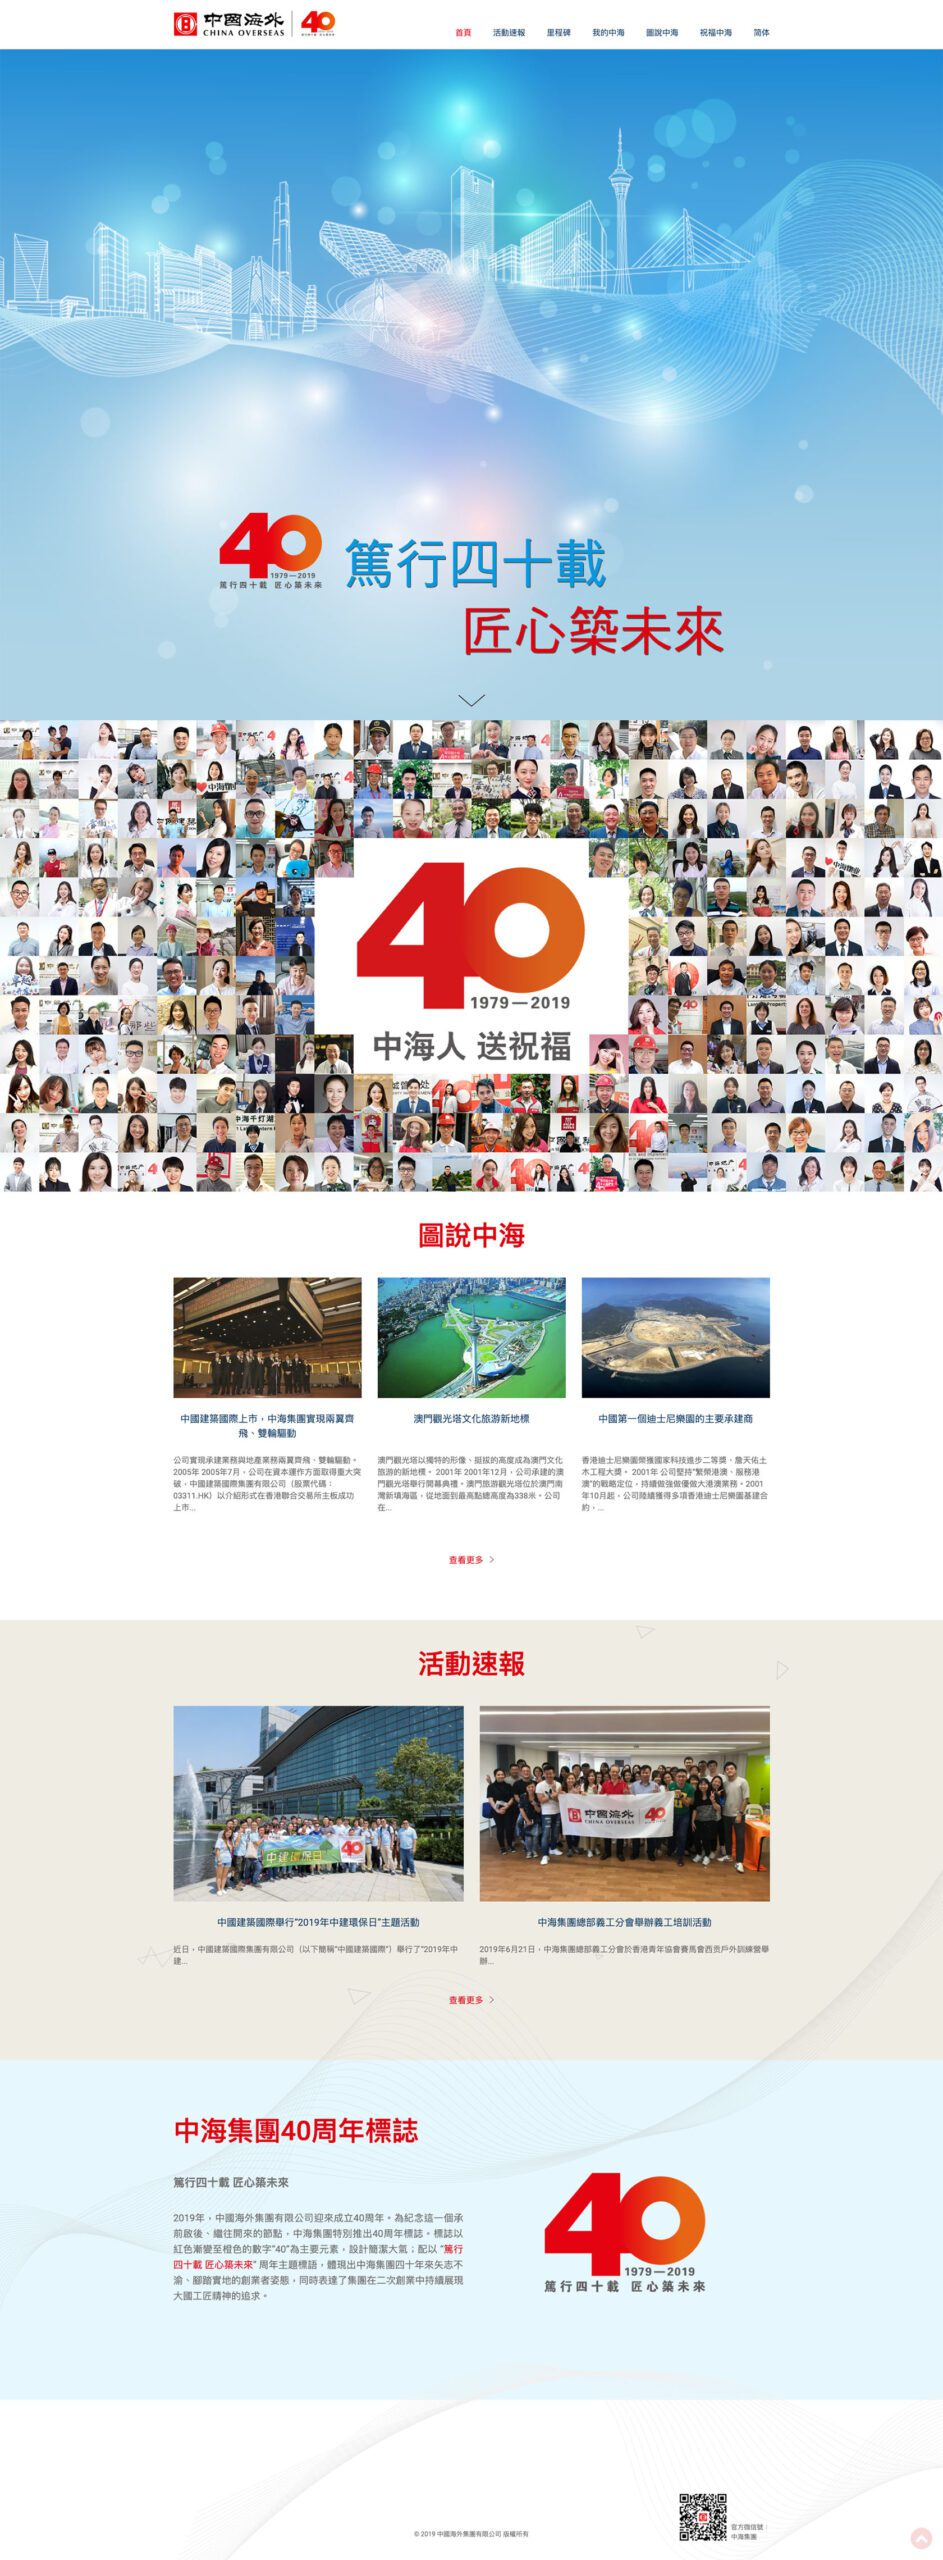 China Overseas Web Design Agency Miracle 00 scaled